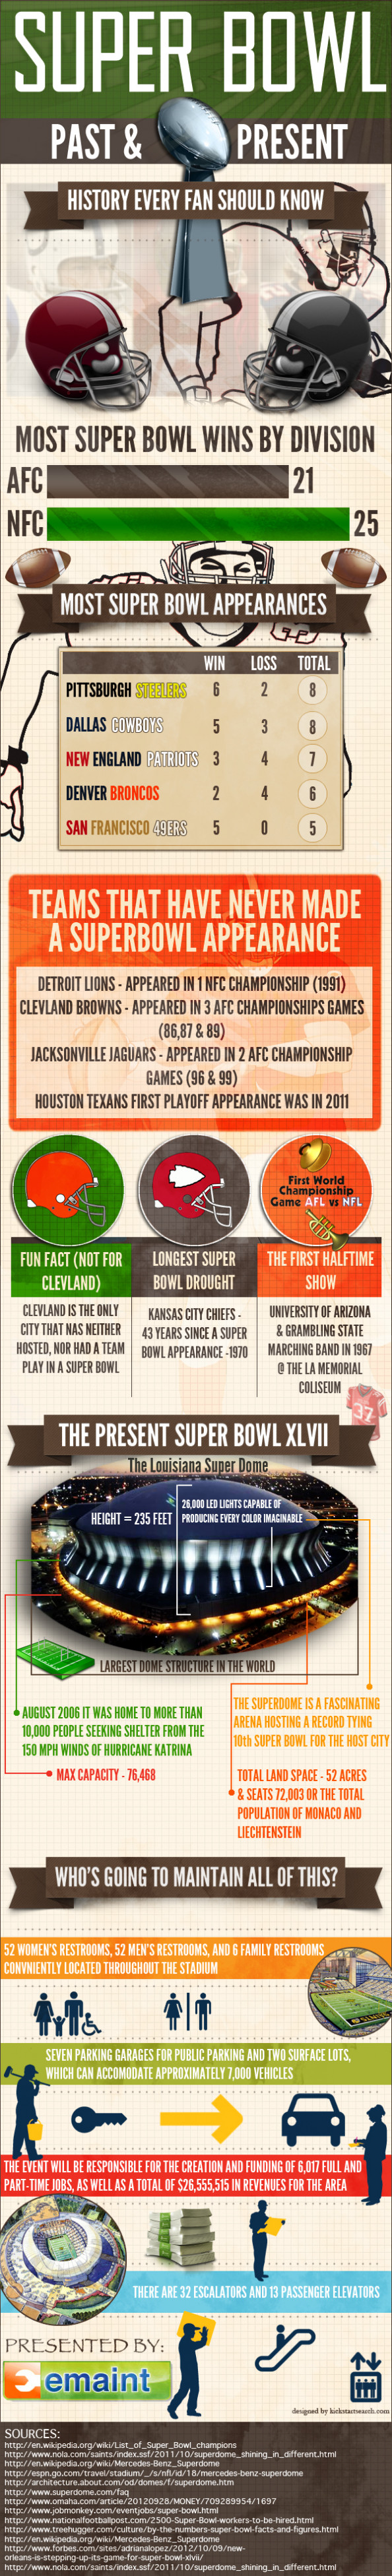 Super Bowl Past &amp; Present Infographic